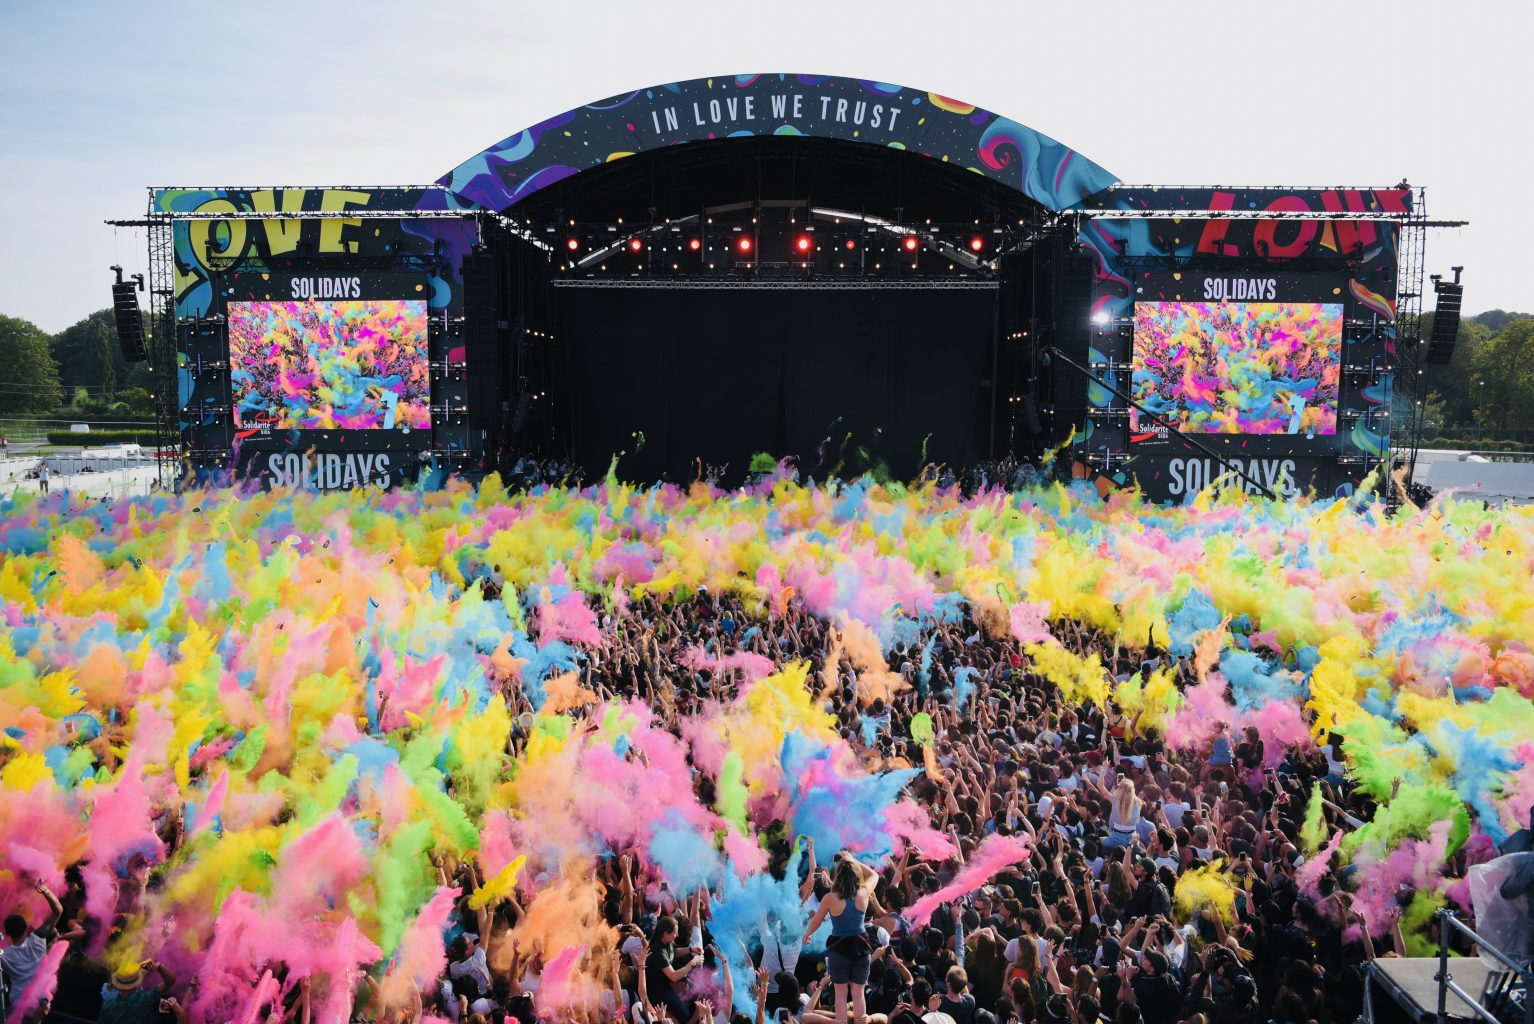 Solidays festival in Paris